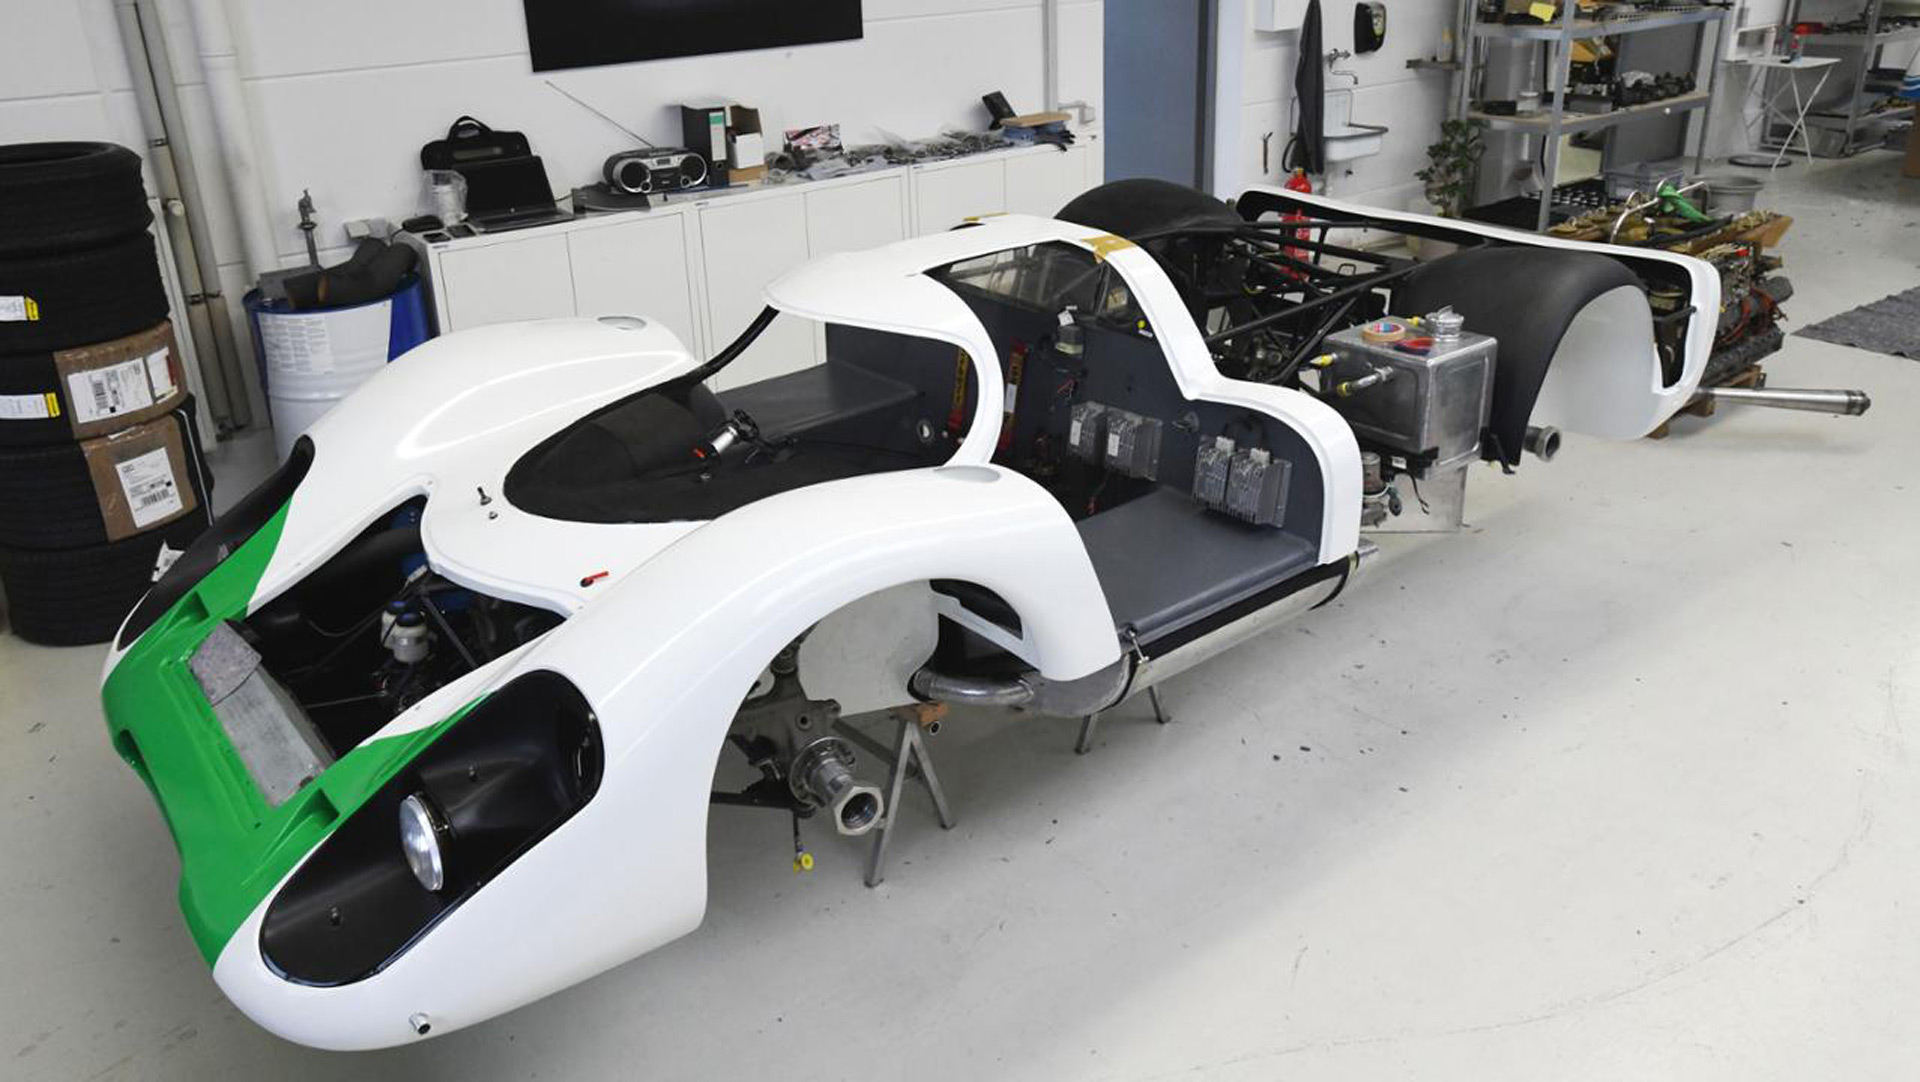 Porsche put a lot of work into restoring the original 917.